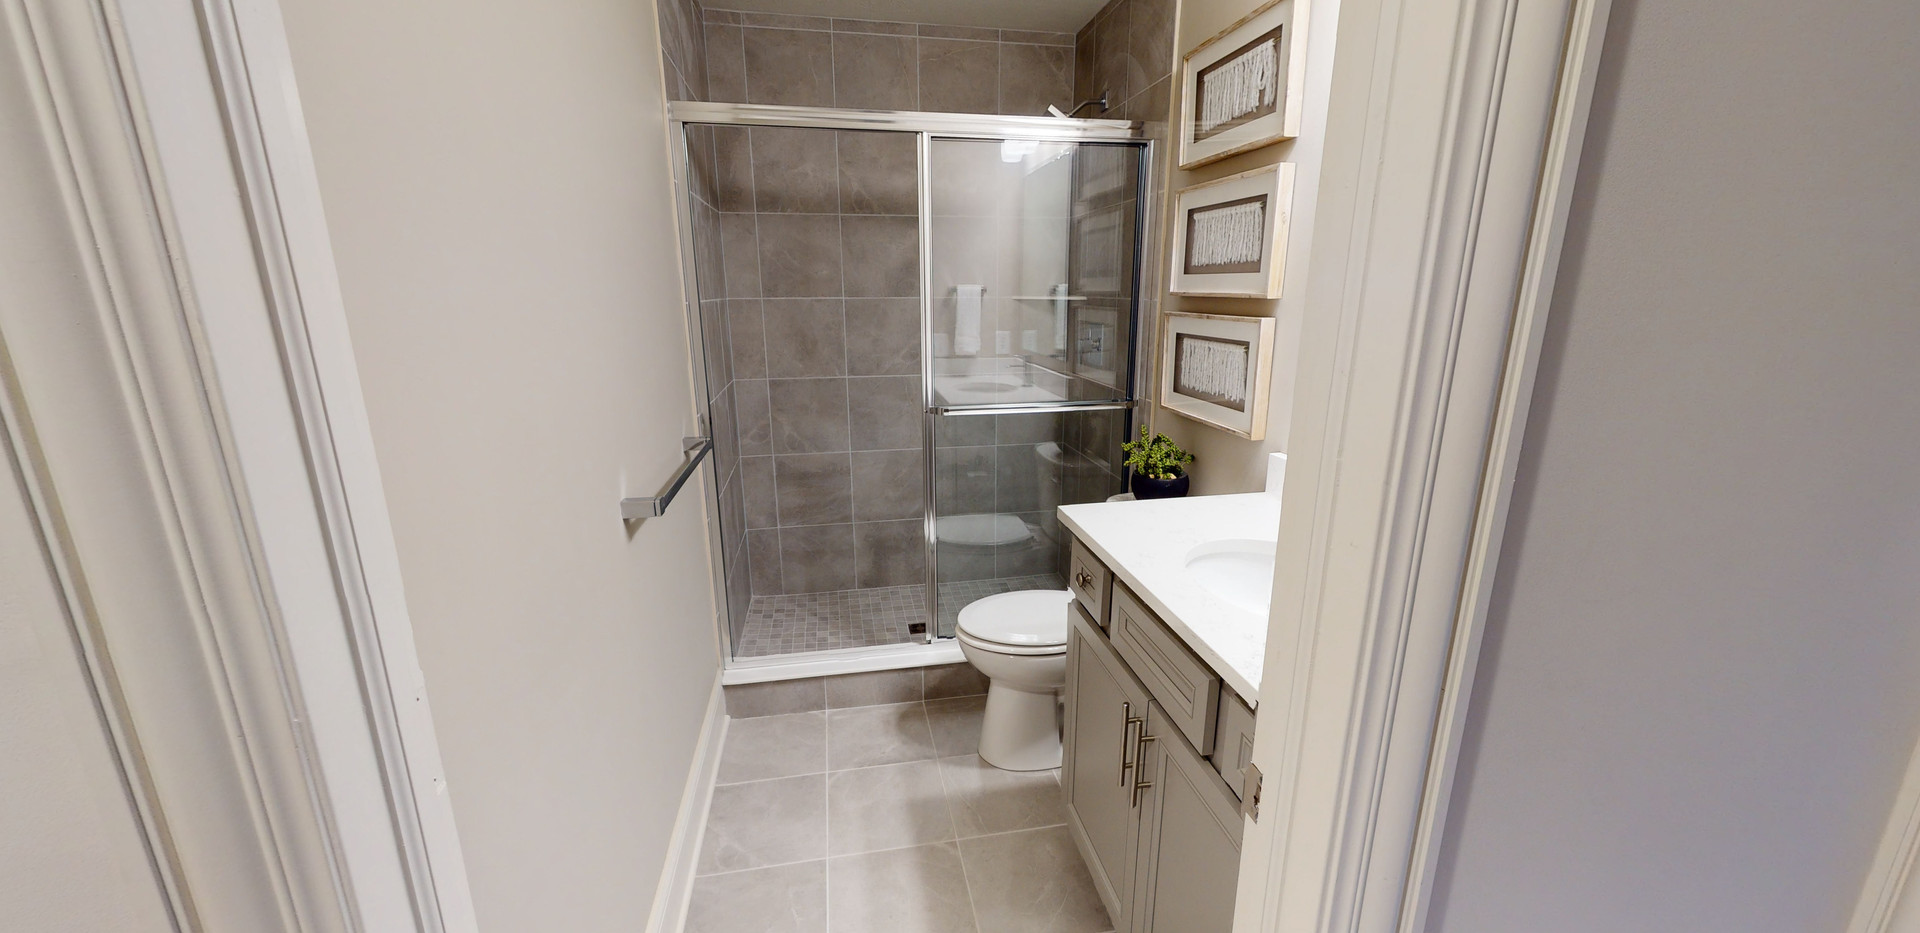 Simple real estate photography bathroom photo with white accents and white vanity